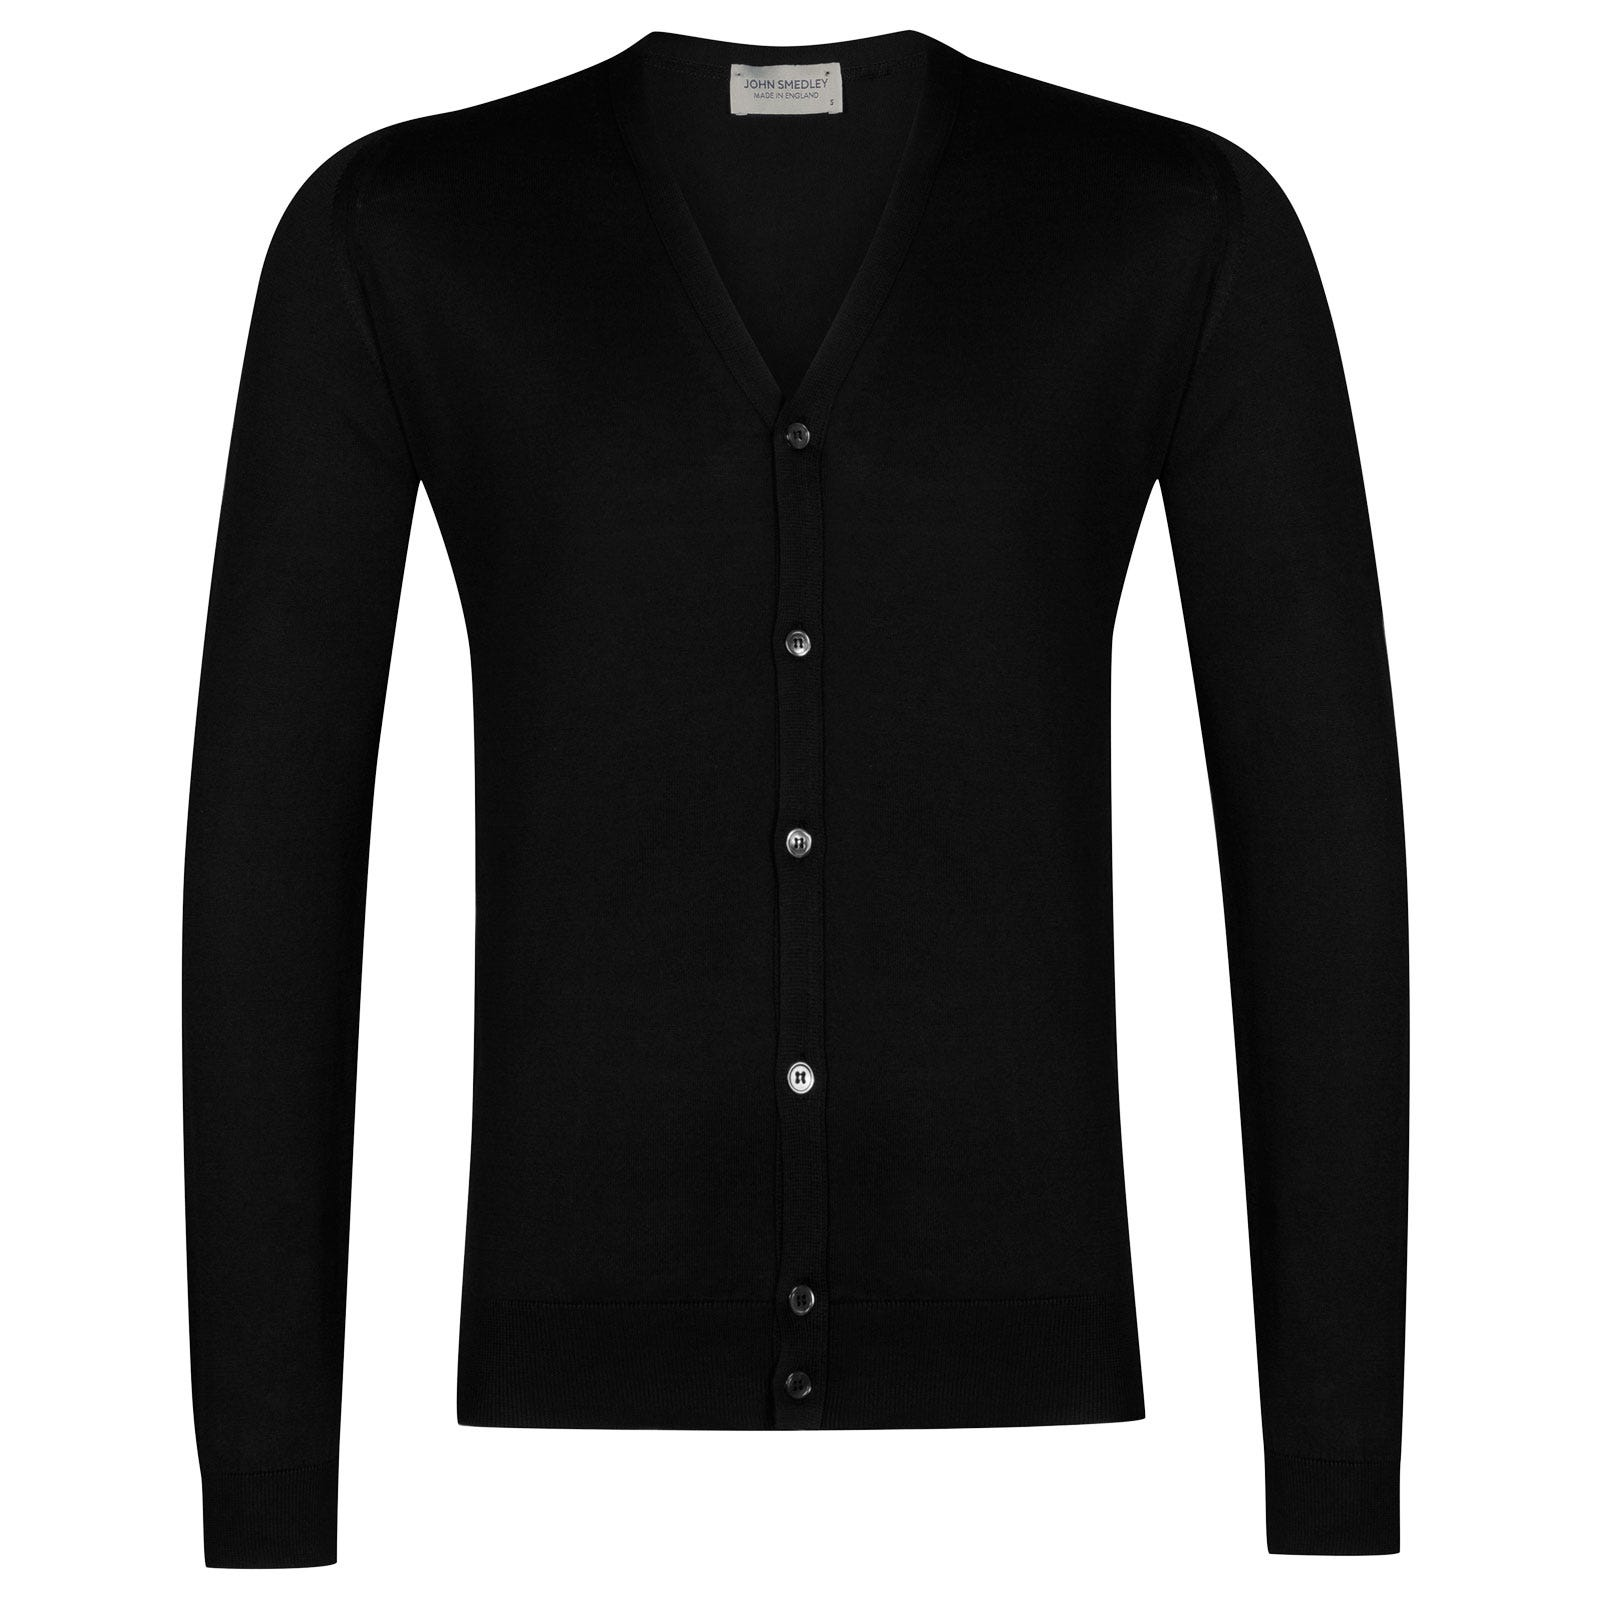 John Smedley whitchurch Sea Island Cotton Cardigan in Black-S